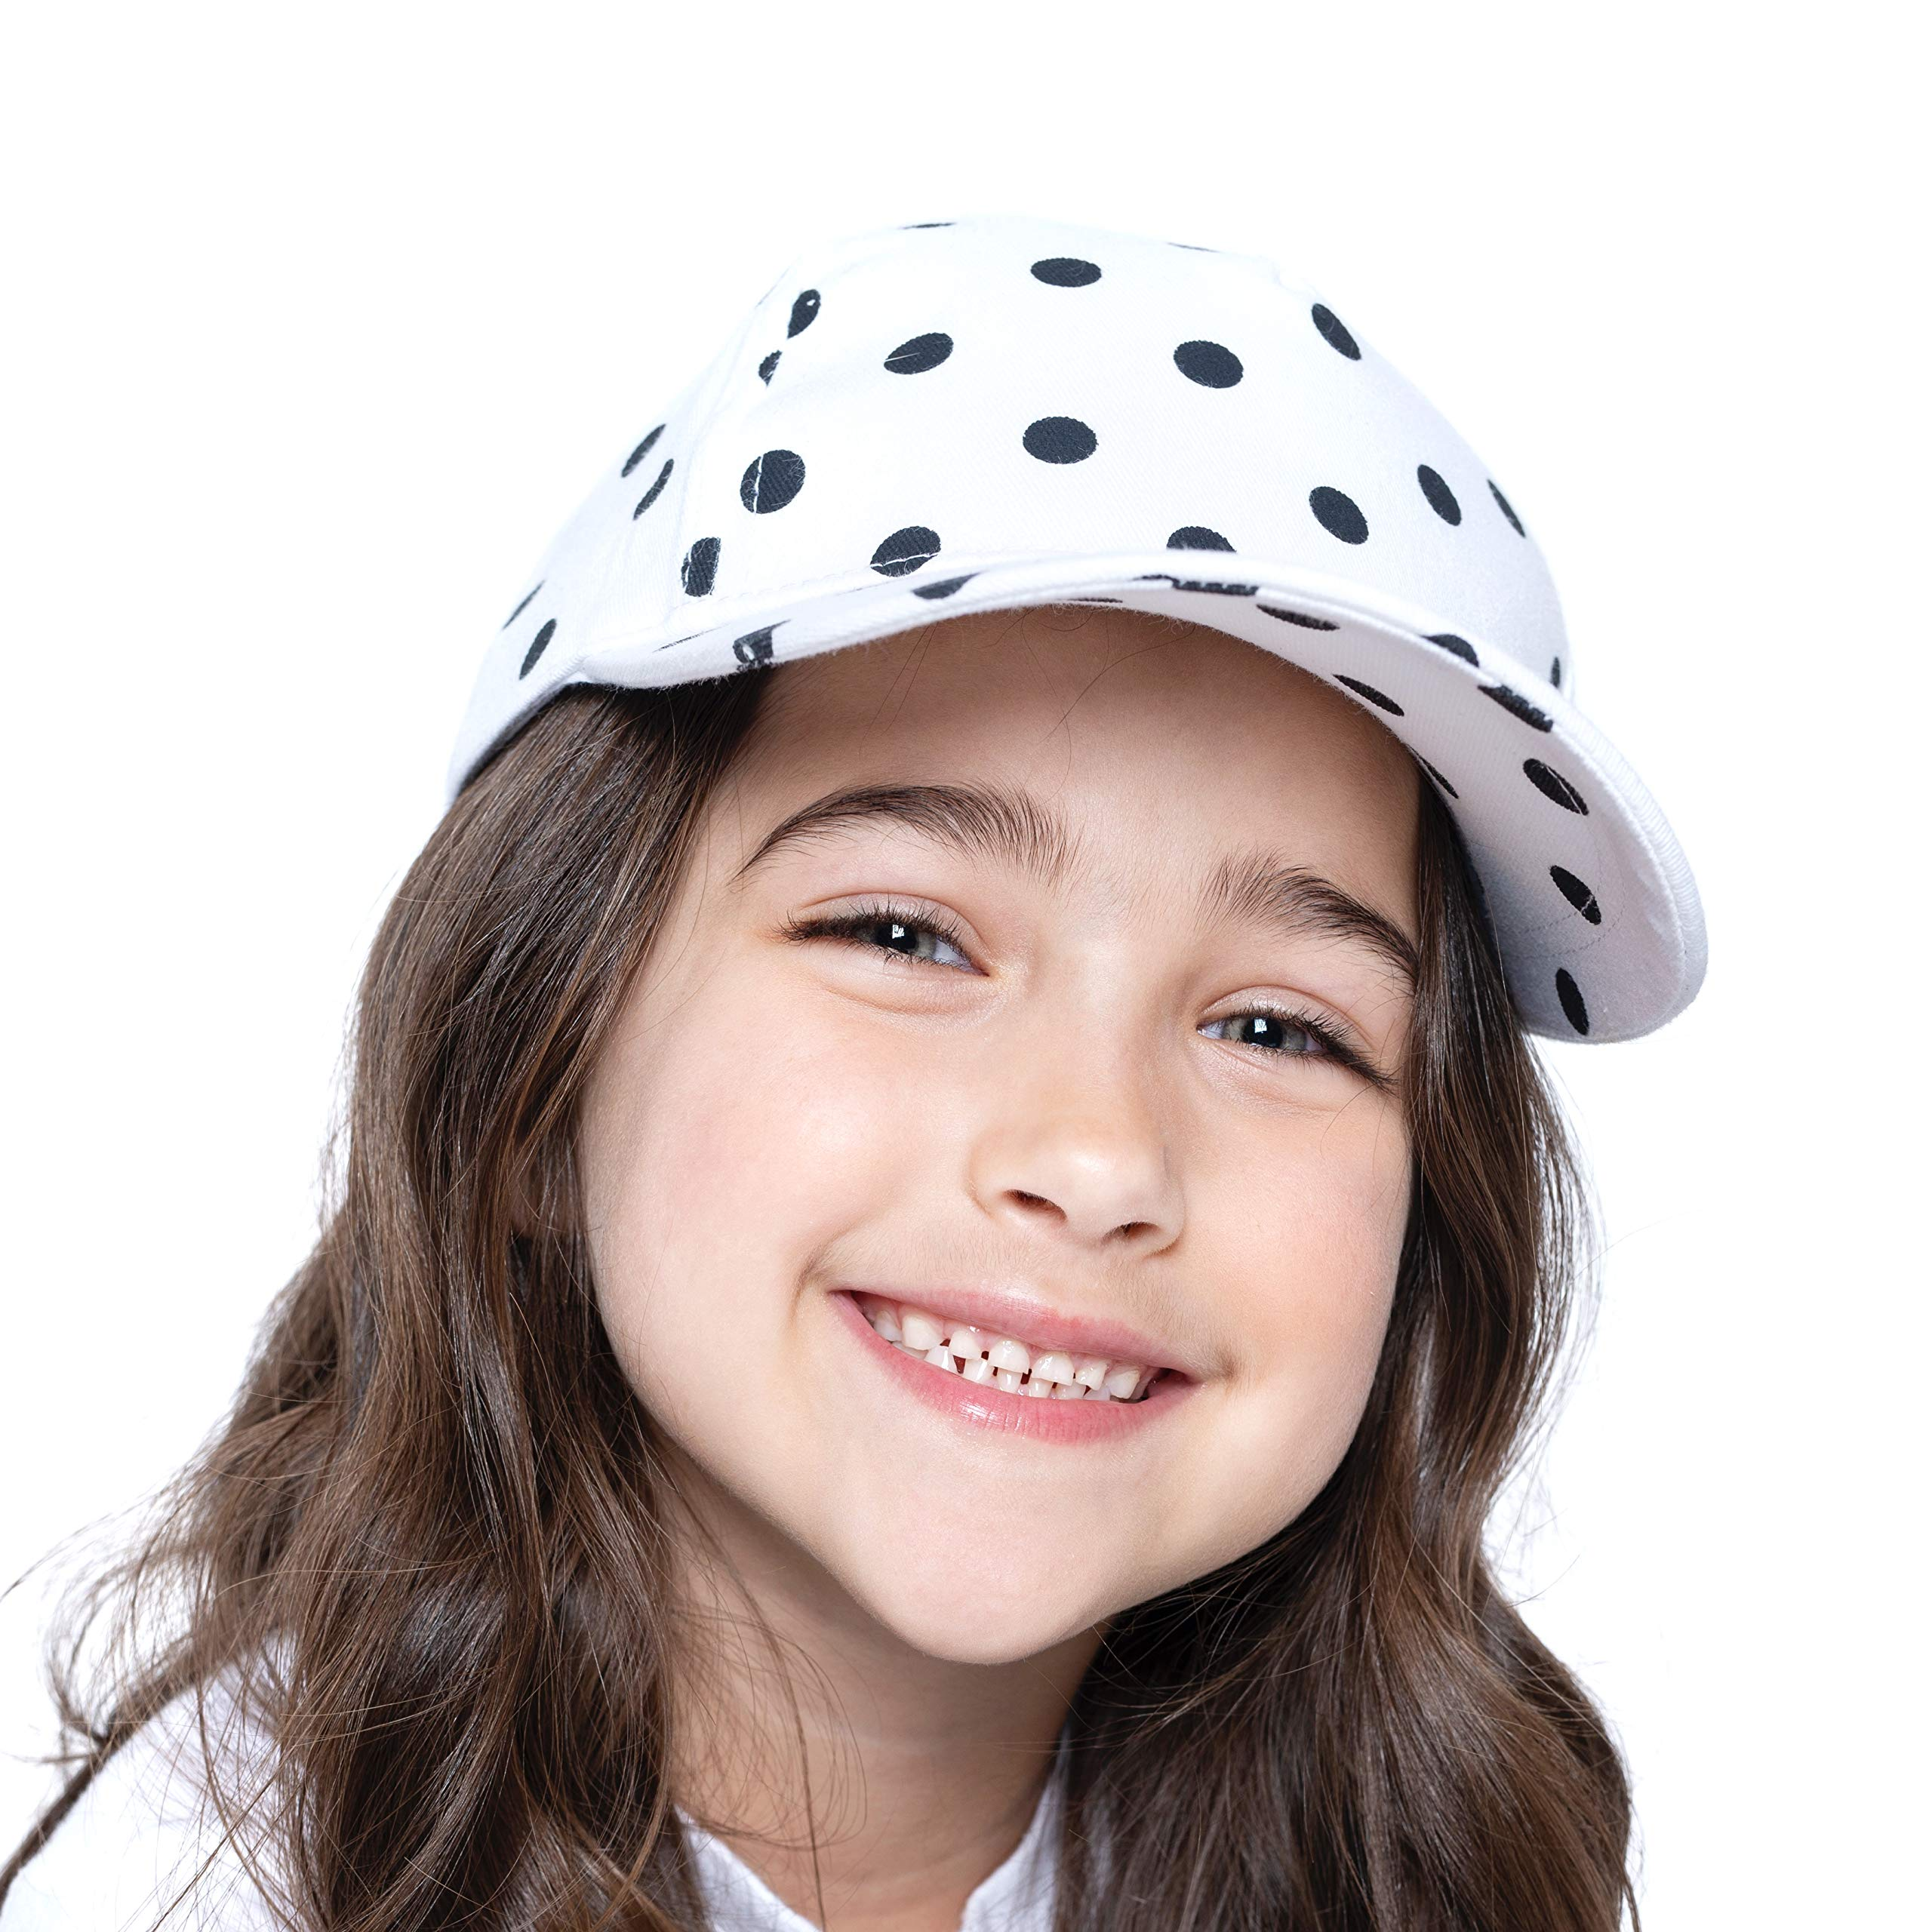 accsa Toddler Kids Girl Baseball Cap Trucker Hat UPF Sun Protection 2 Pack Age 2-5Y by accsa (Image #2)